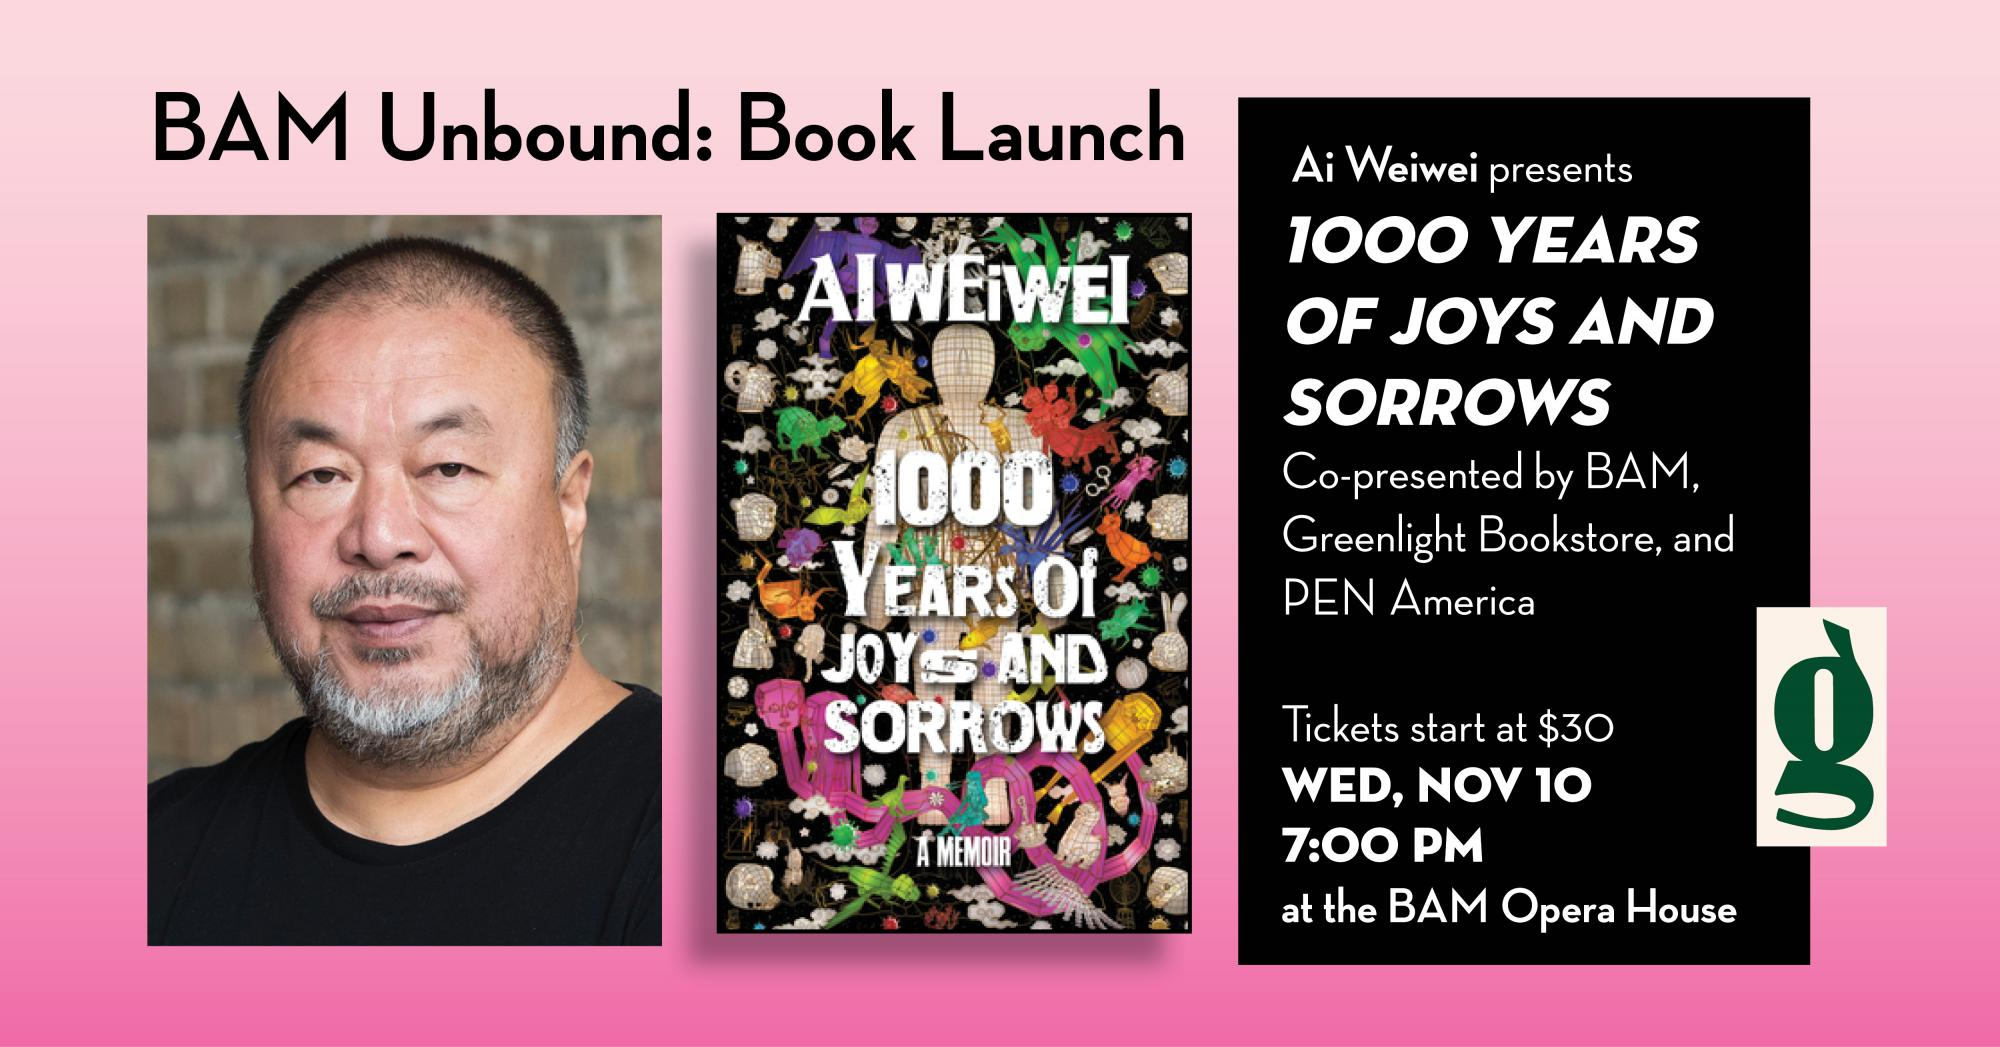 BAM Unbound Book Launch: Ai Wei Wei presents 1000 Year of Joys and Sorrows, November 10